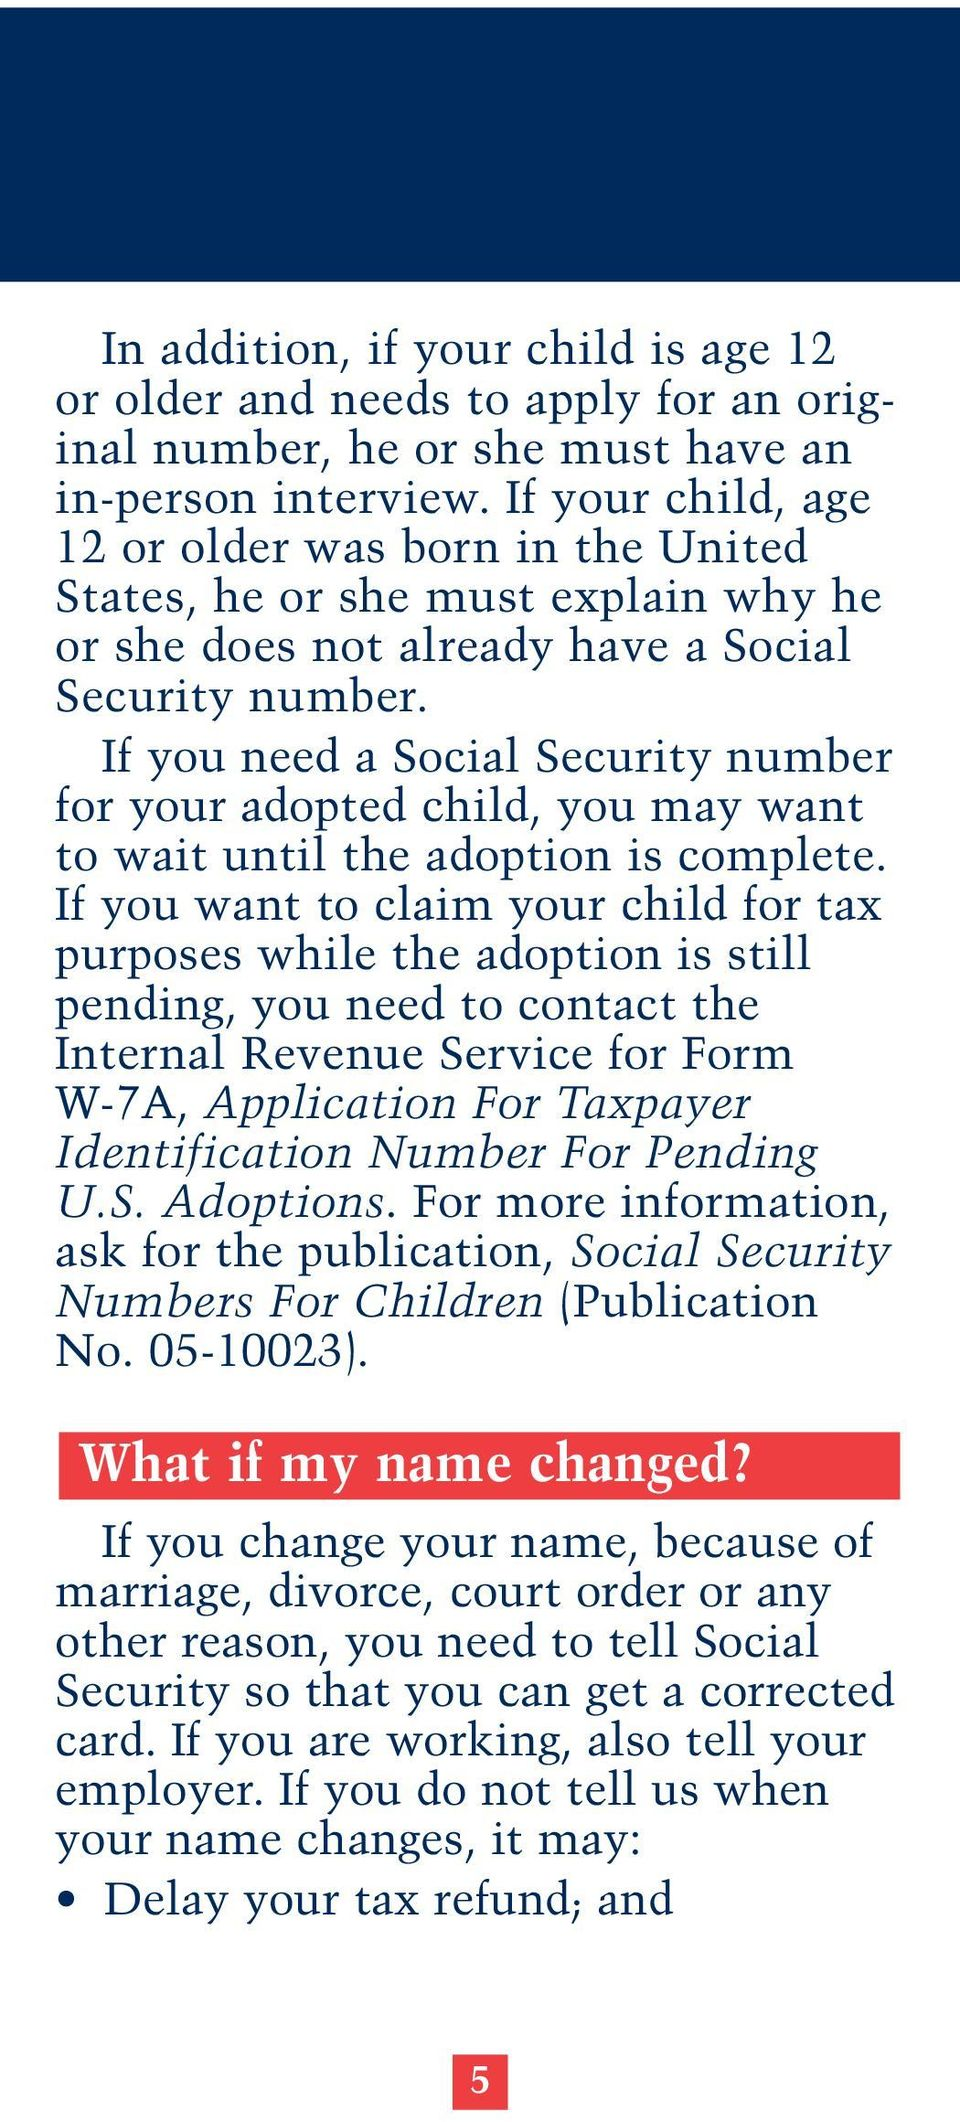 If you need a Social Security number for your adopted child, you may want to wait until the adoption is complete.